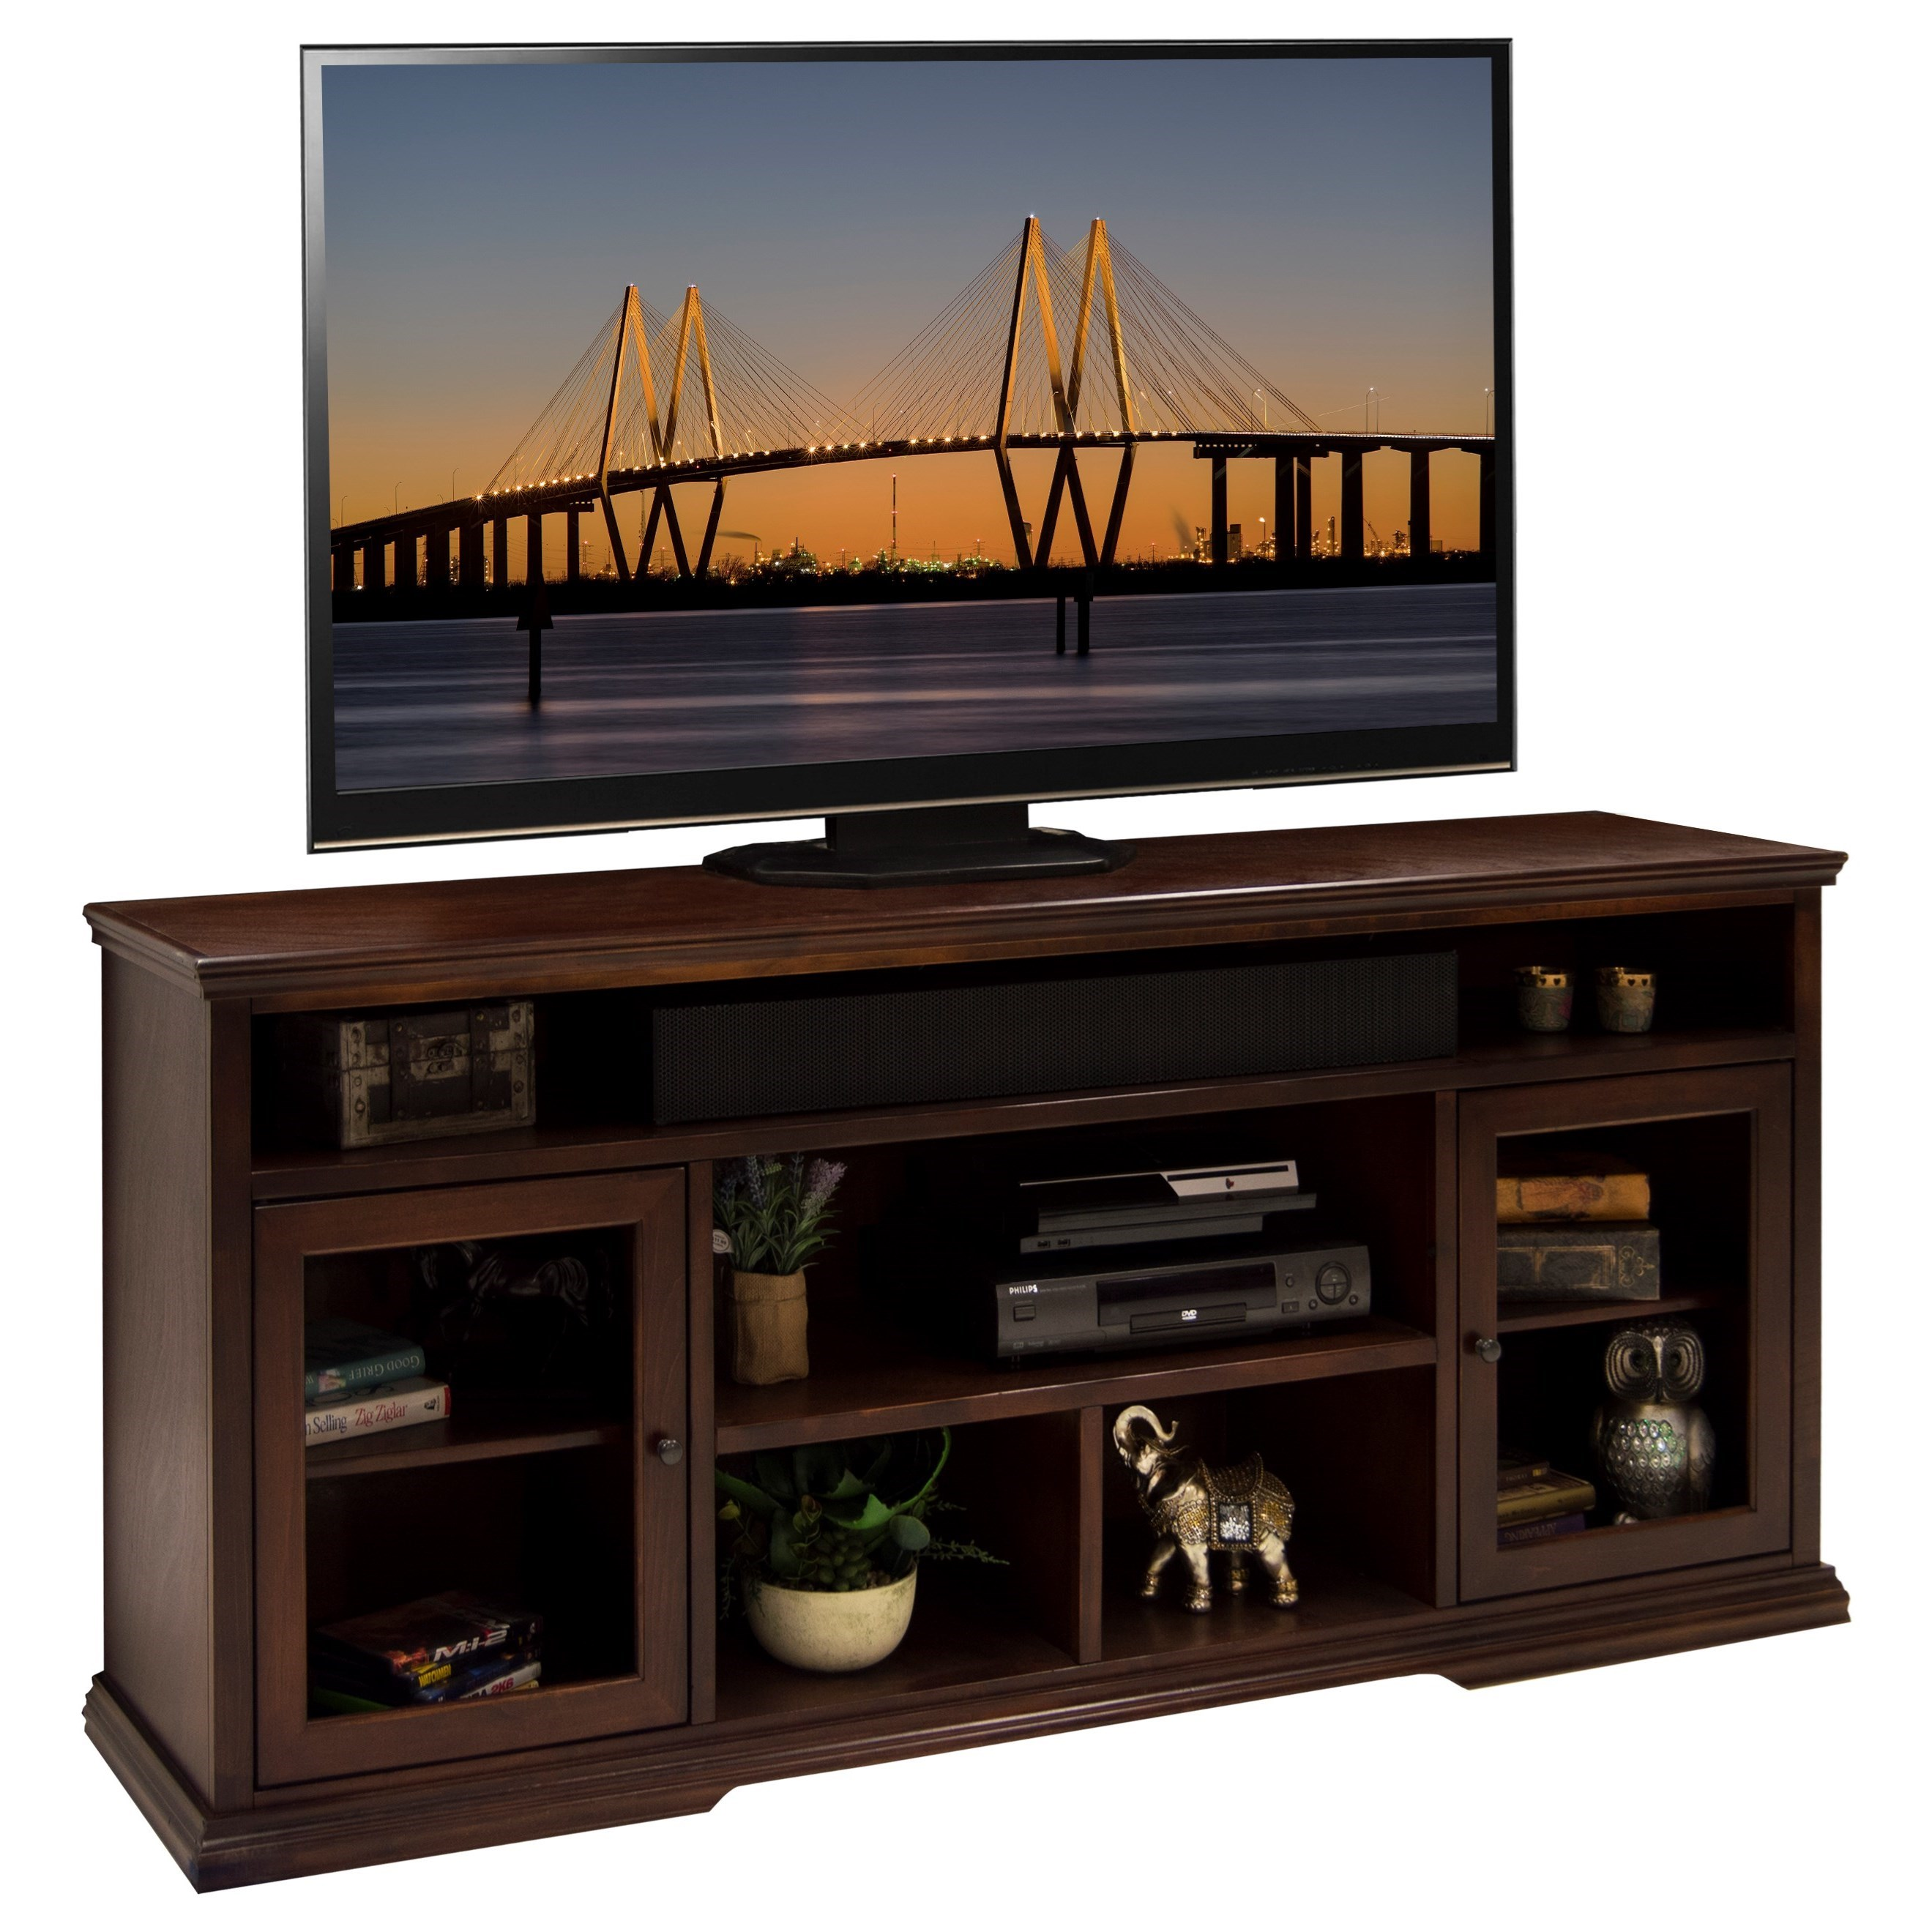 Legends Furniture Ashton Place 74-Inch Tall TV Cart - Item Number: AP1331.DNC